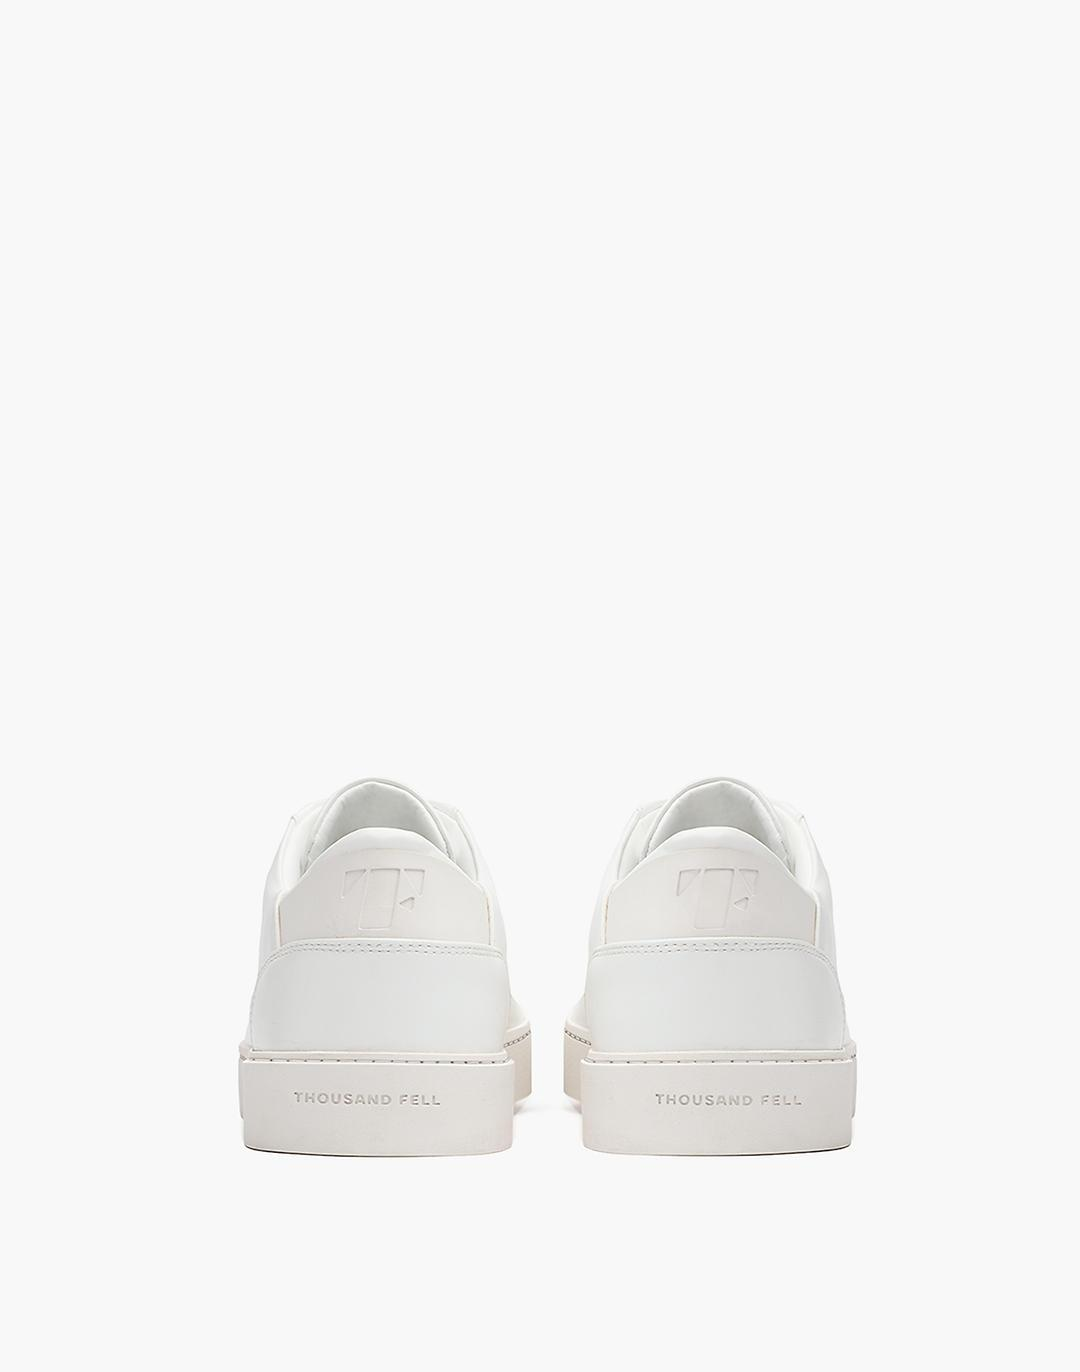 Thousand Fell Vegan Leather Lace-Up Sneakers 2